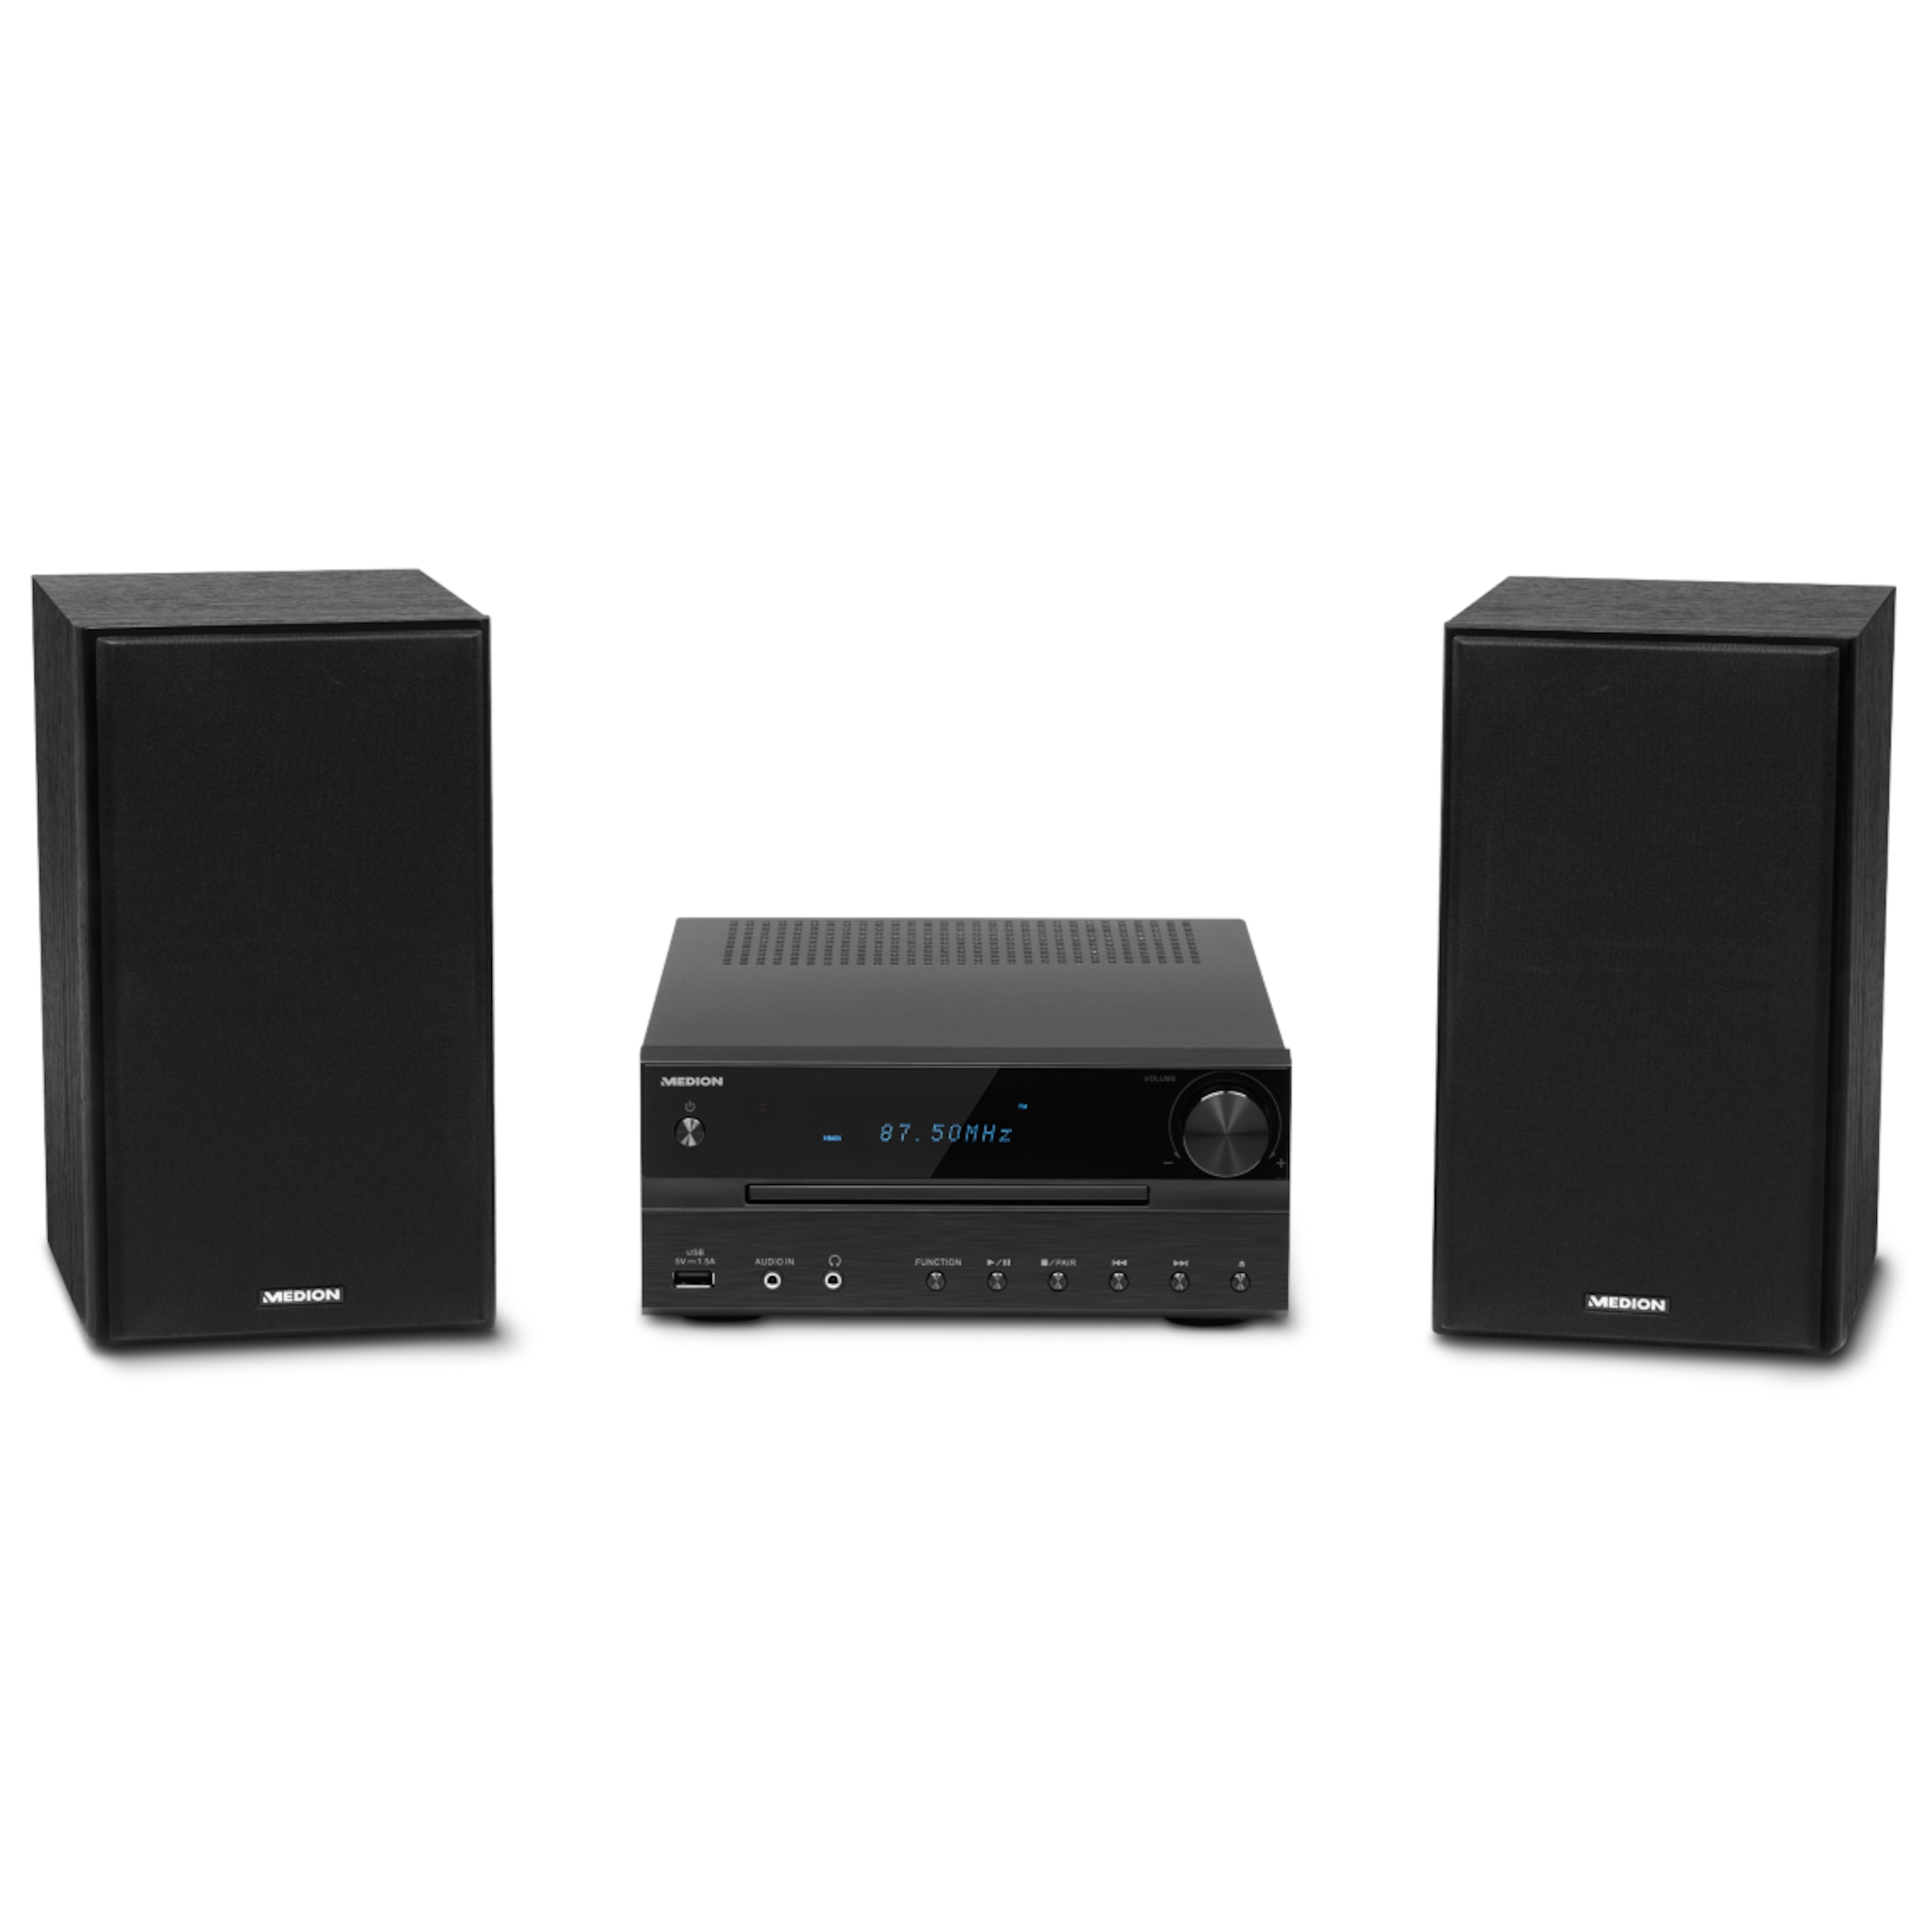 MEDION® LIFE® P64262 Micro-Audio-System mit CD-Player, DAB+, Bluetooth 3.0, USB-Anschluss & -Ladefunktion, AUX-Anschluss, PLL-UKW-Stereo-Radio, 2 x 15 W RMS